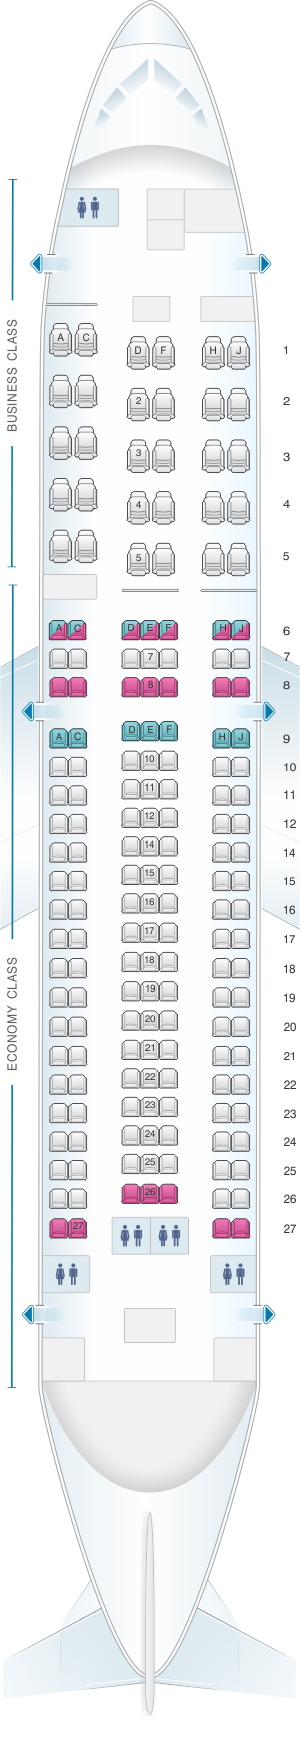 Seat map for Aeromexico Boeing B767 200ER